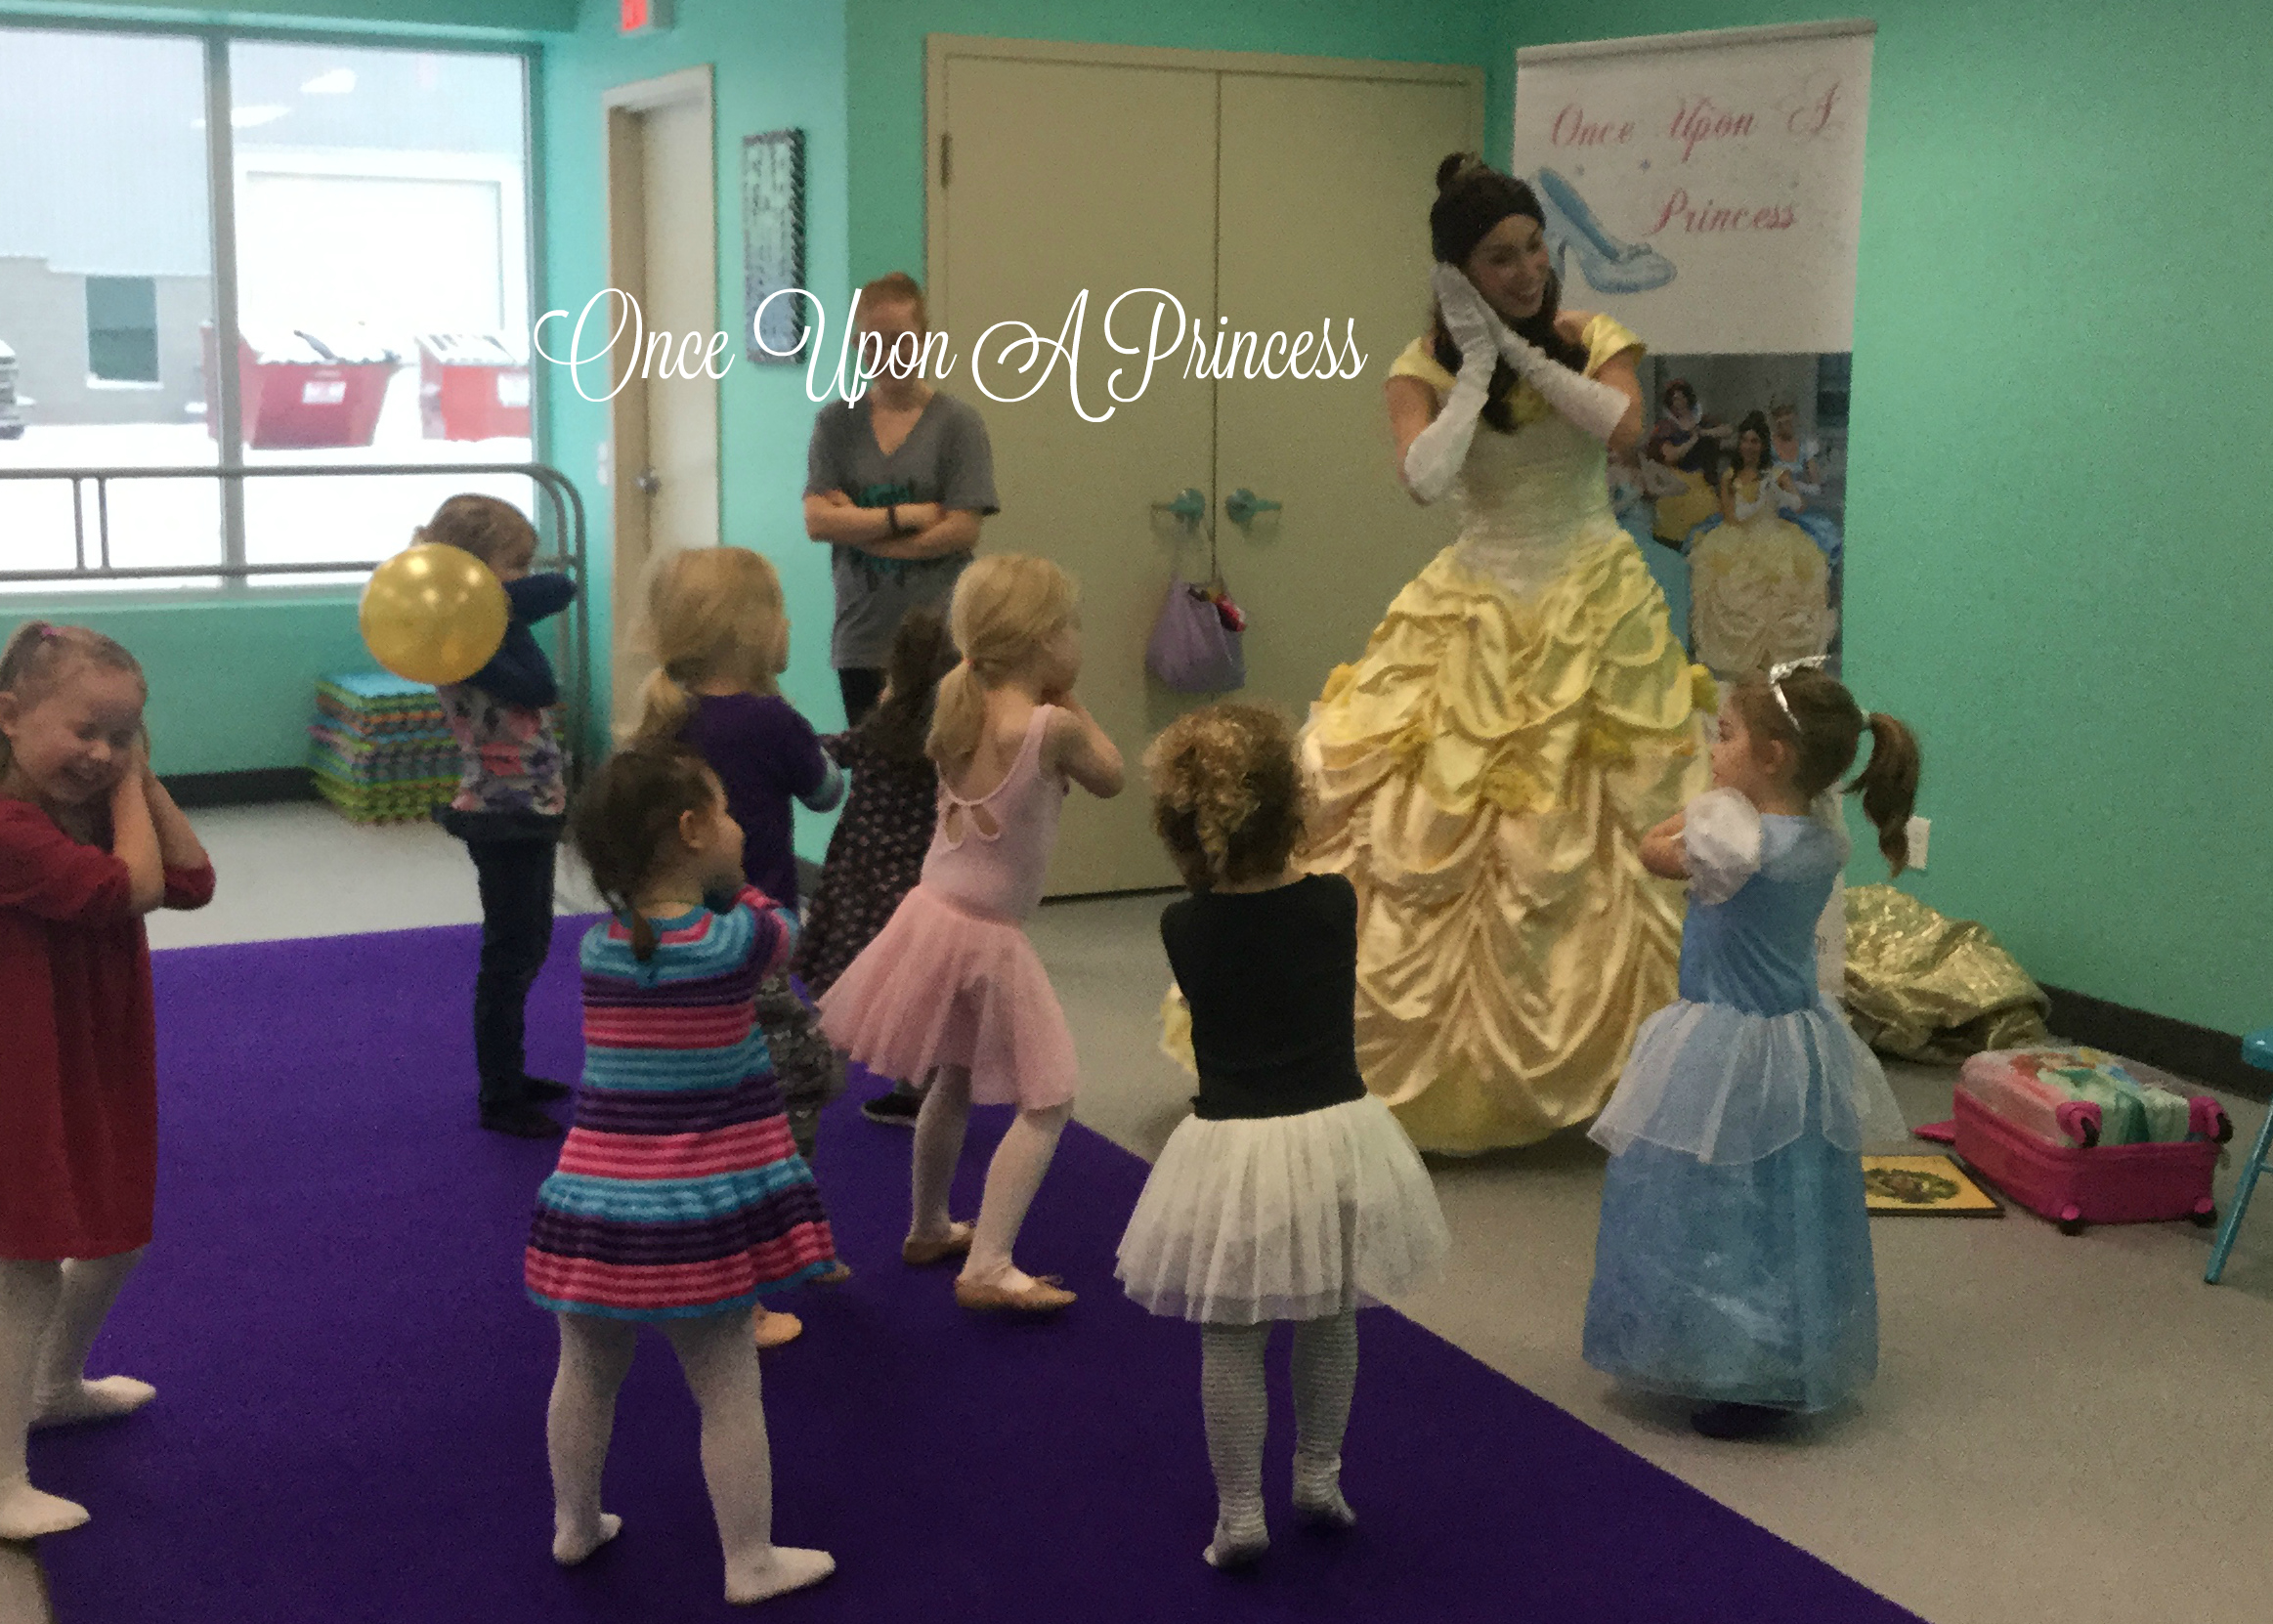 belle danceforce 3 once upon a princess party